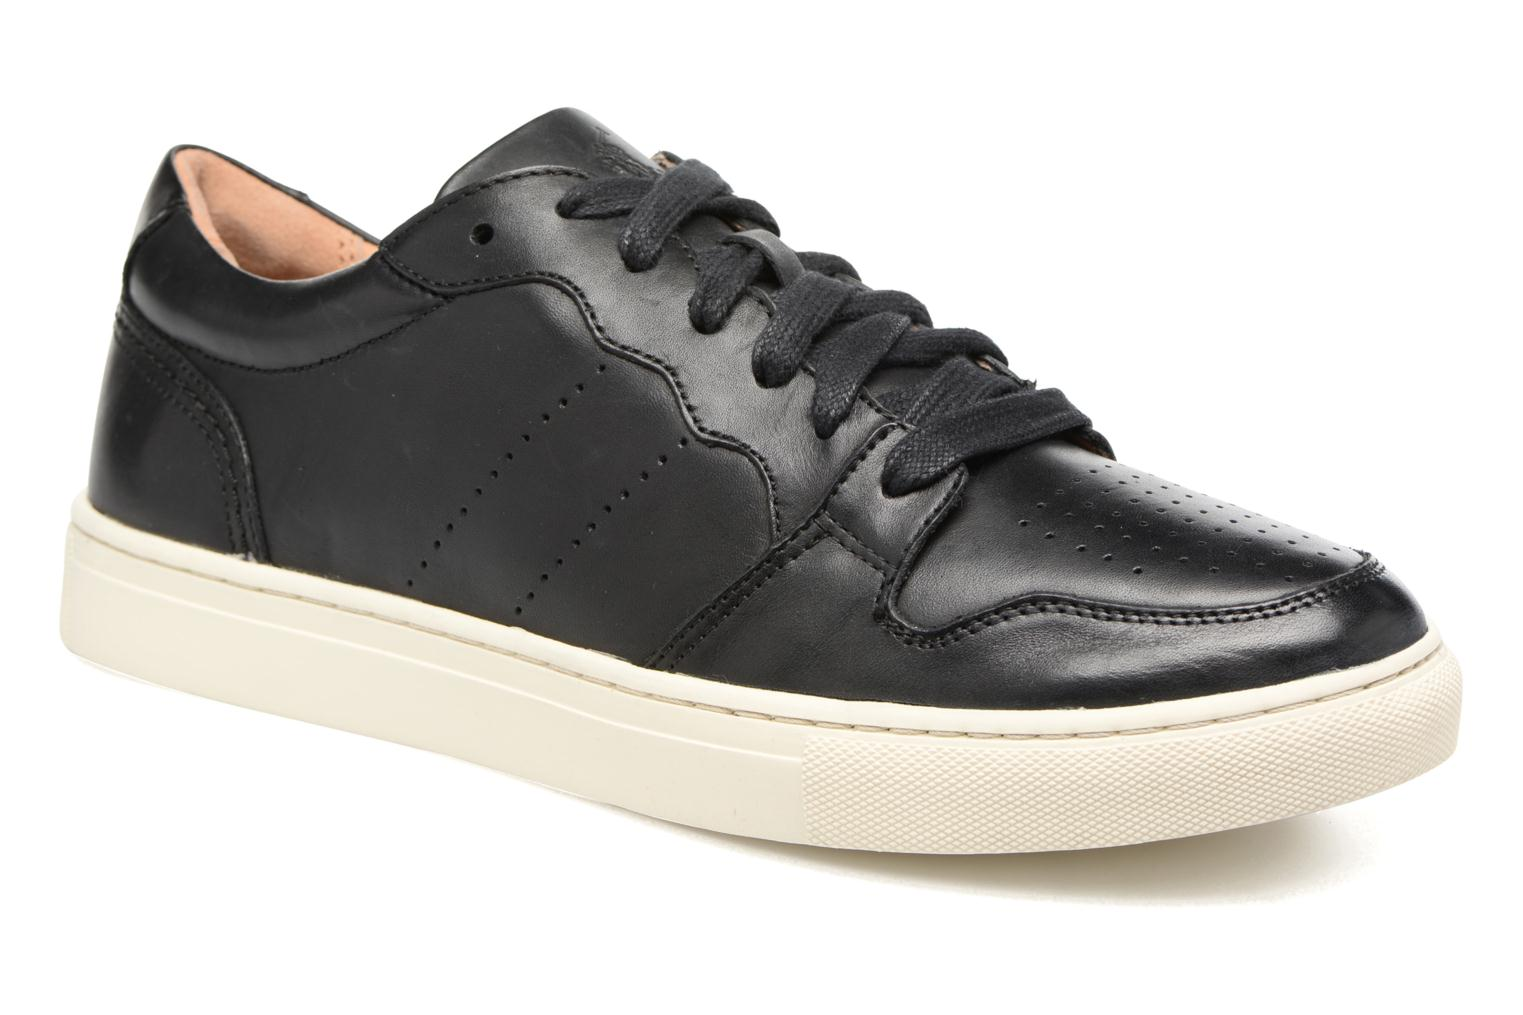 Marques Chaussure homme Polo Ralph Lauren homme Jeston-Sneakers-Athletic Shoe Black